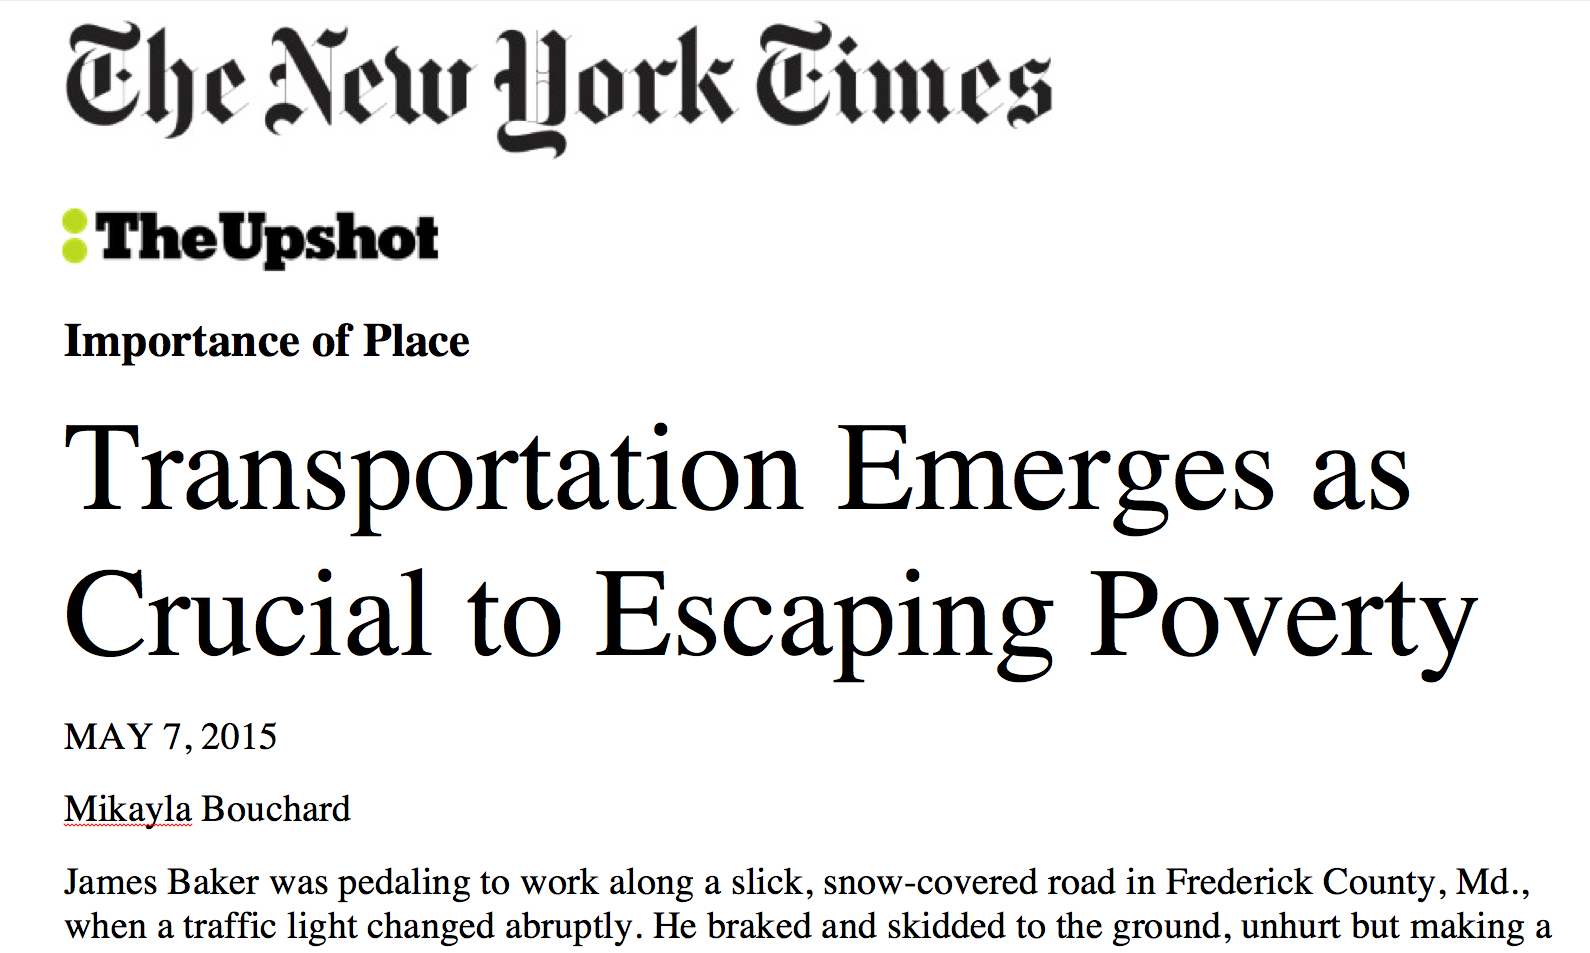 """Transportation Emerges as Crucial to Escaping Poverty""  [Miayla Bouchard, 5/7/15 © The New York Times]"